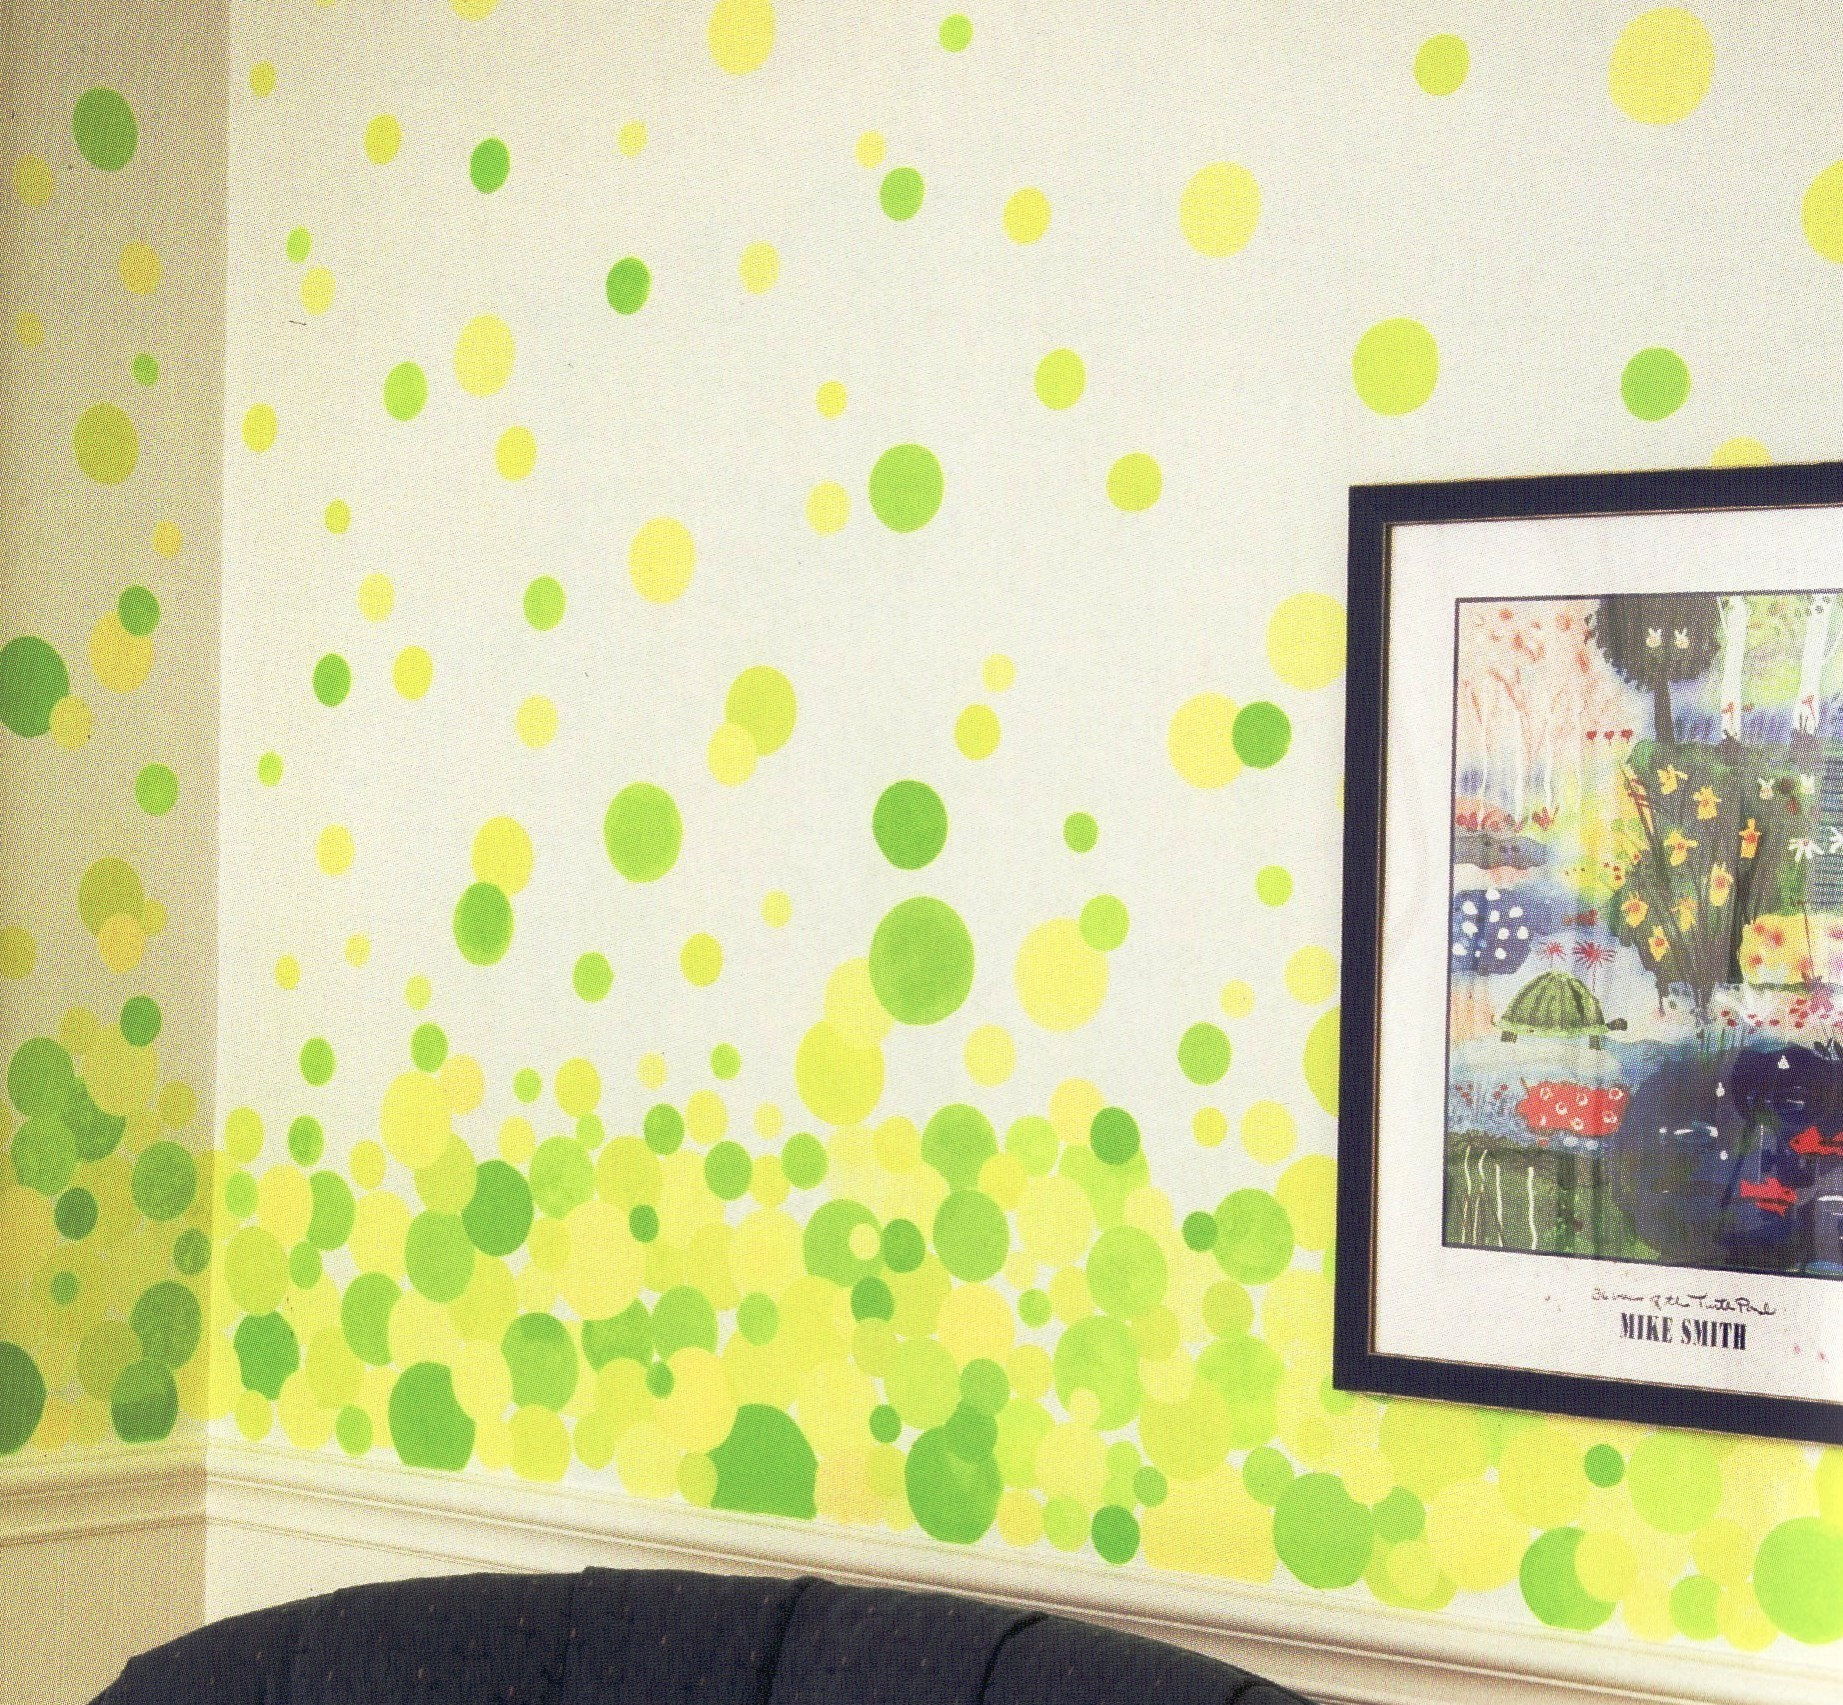 Kid\'s Room Bubble Painting Technique - Matt and Shari